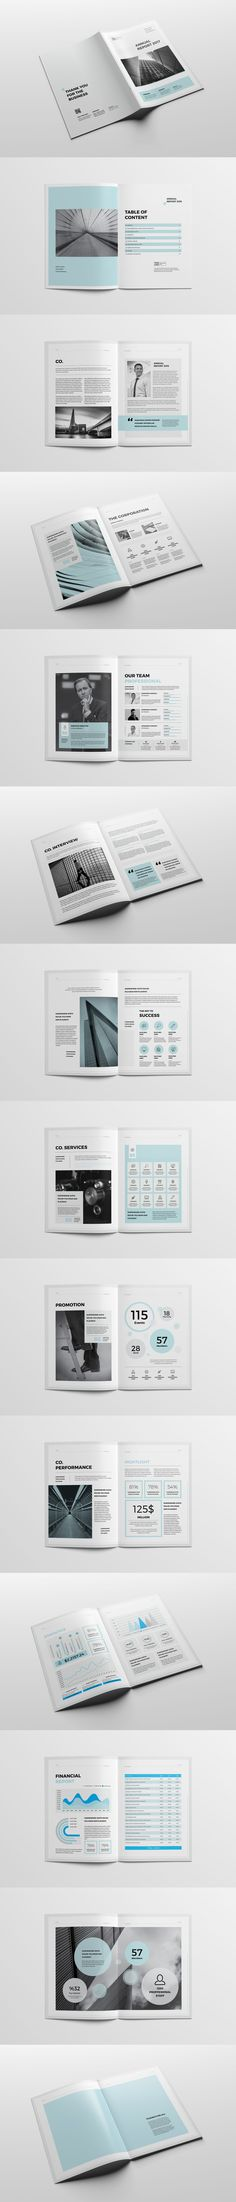 242 best Presentation Design images on Pinterest Design web